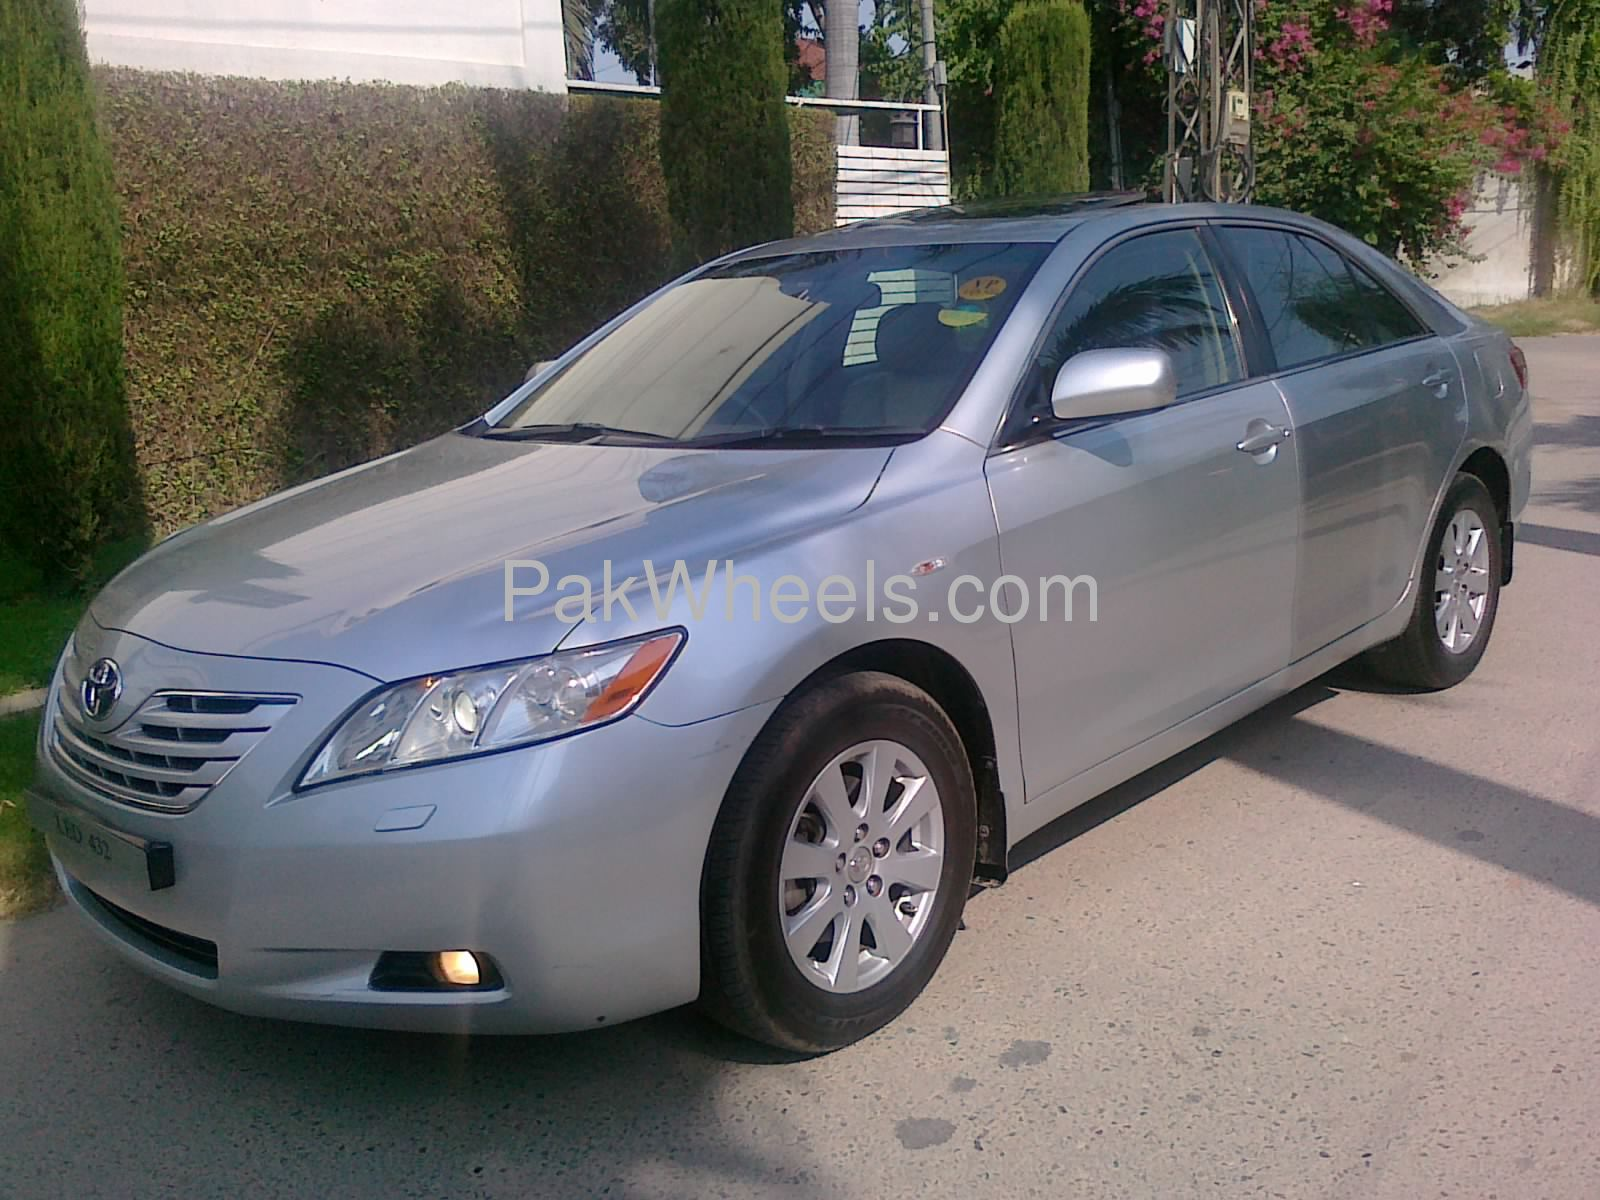 brand new toyota camry for sale interior agya trd 2017 up spec automatic 2 4 2007 in lahore